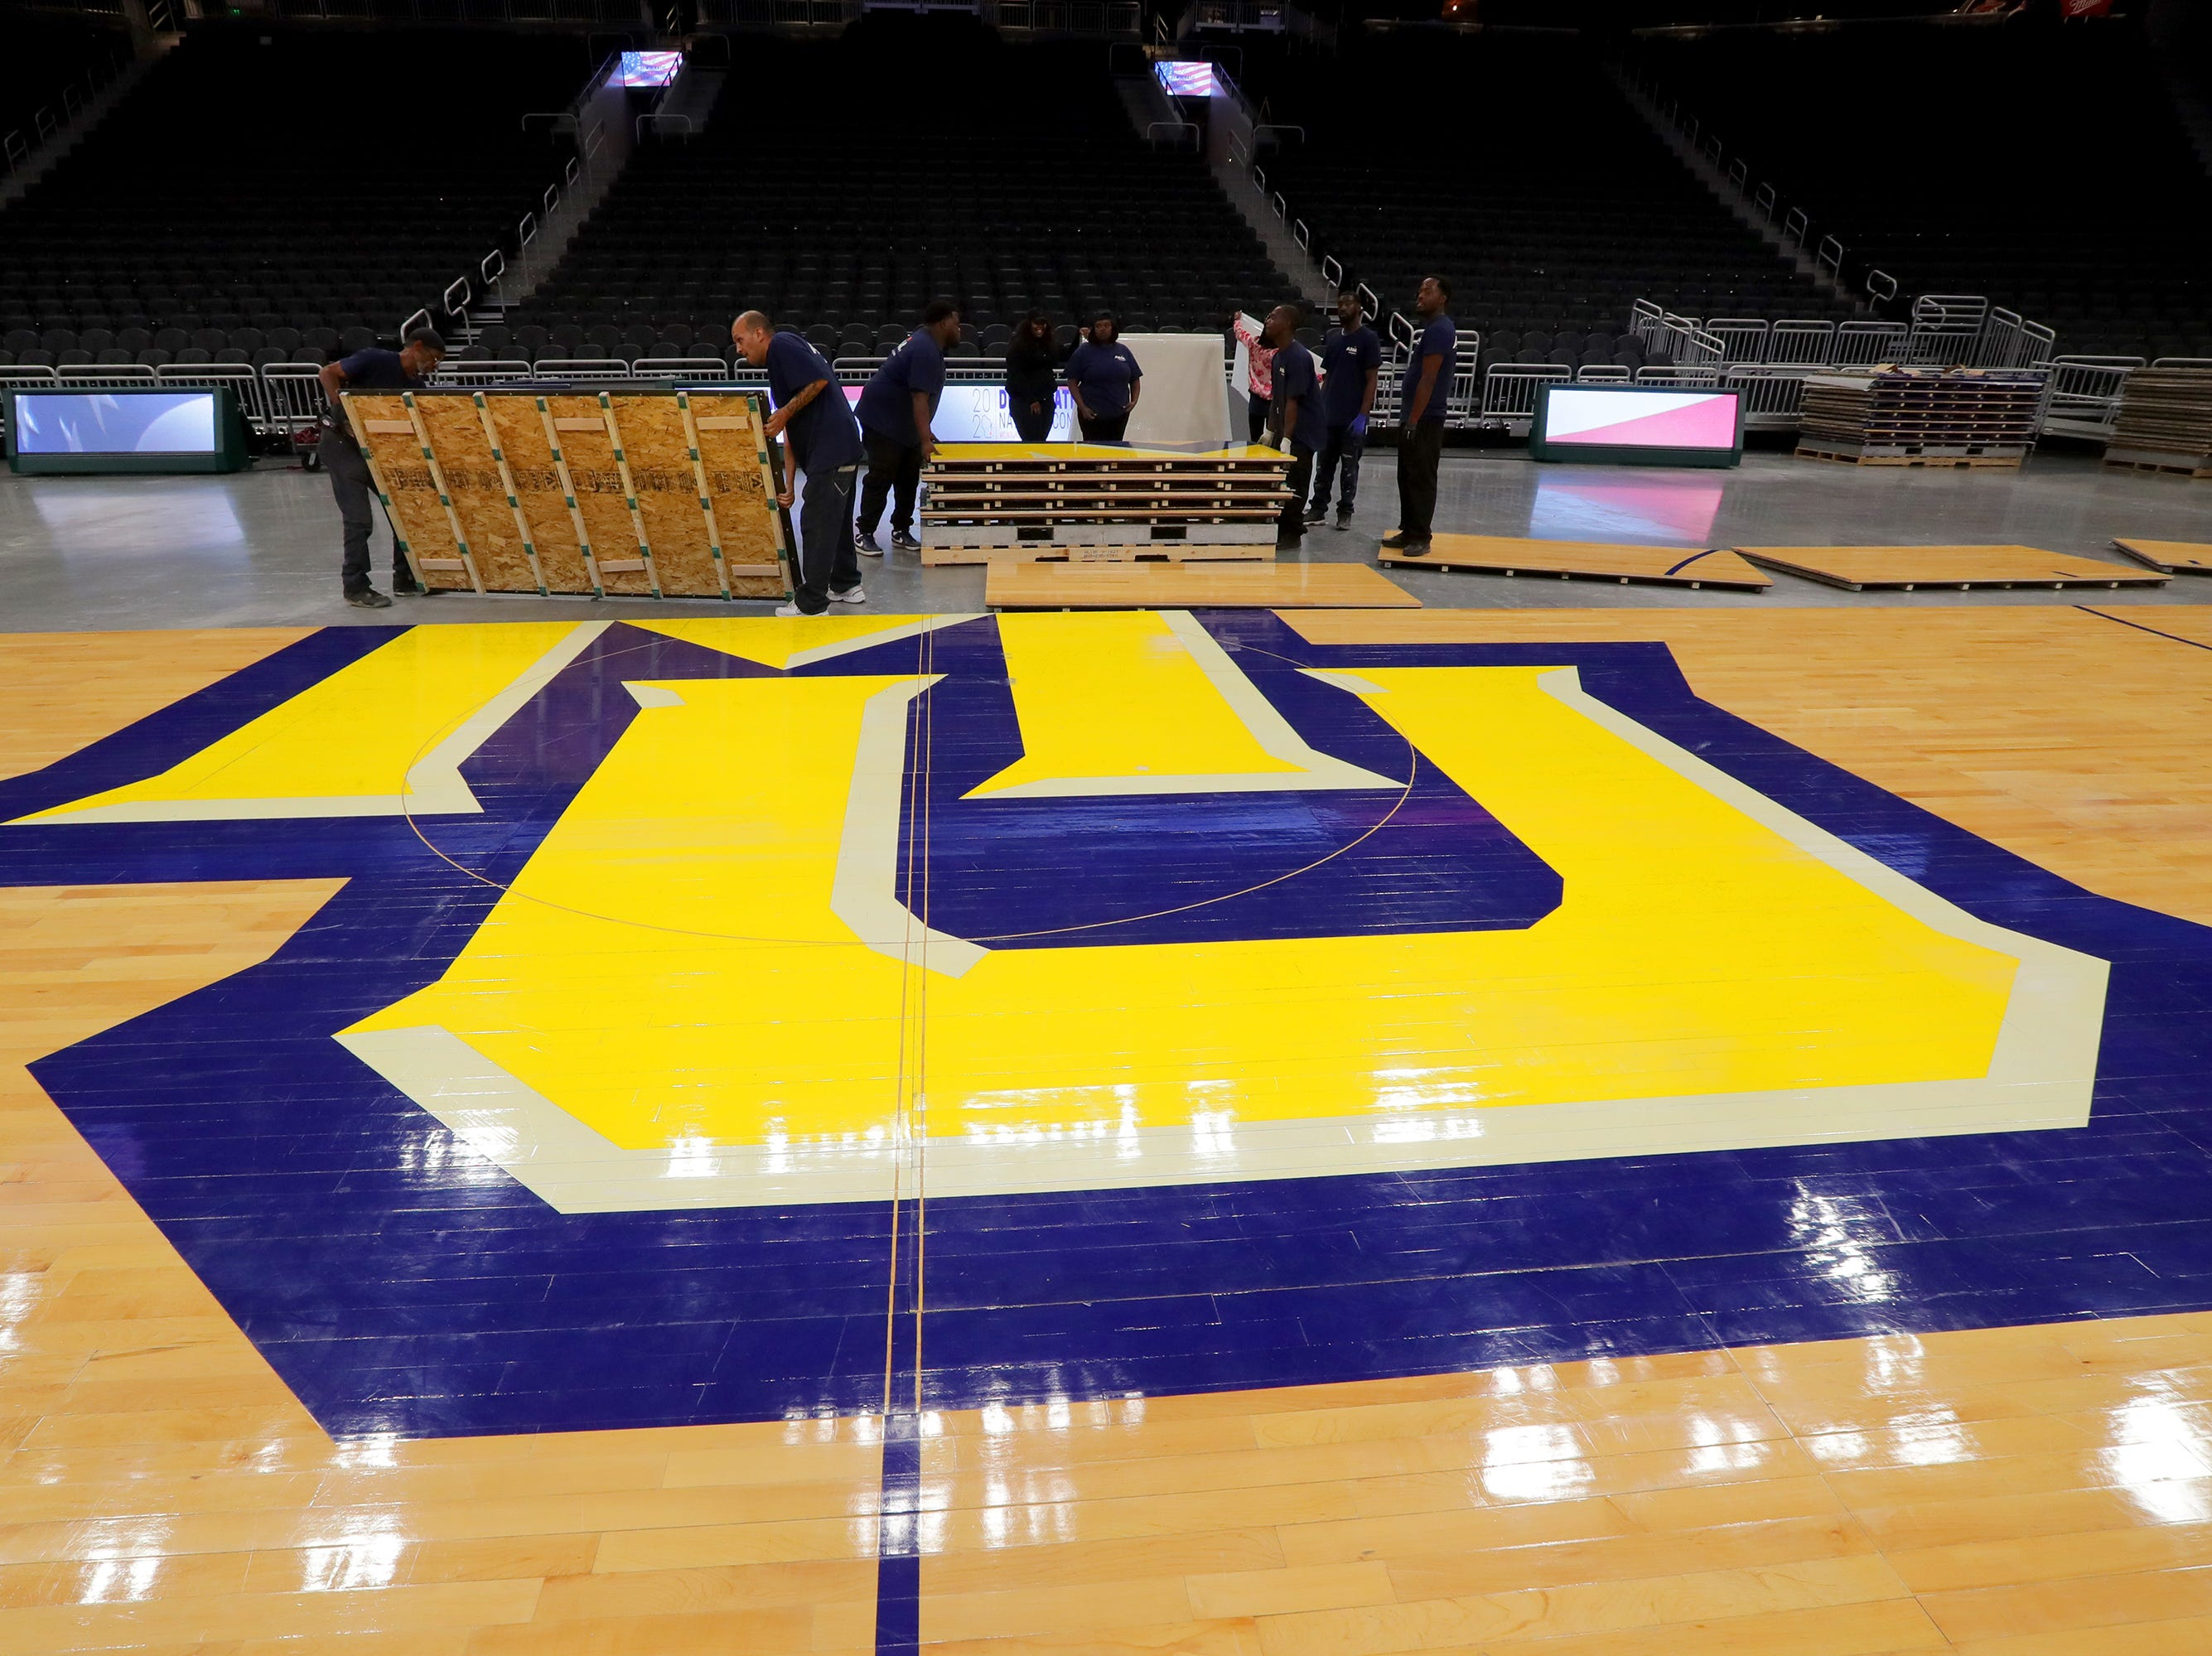 Work is done to install the Marquette floor. The Marquette mens' basketball team locker room is complete at the new Fiserve Forum, the home of the Milwaukee Bucks. Monday, August 27, 2018.  -  Photo by Mike De Sisti / Milwaukee Journal Sentinel